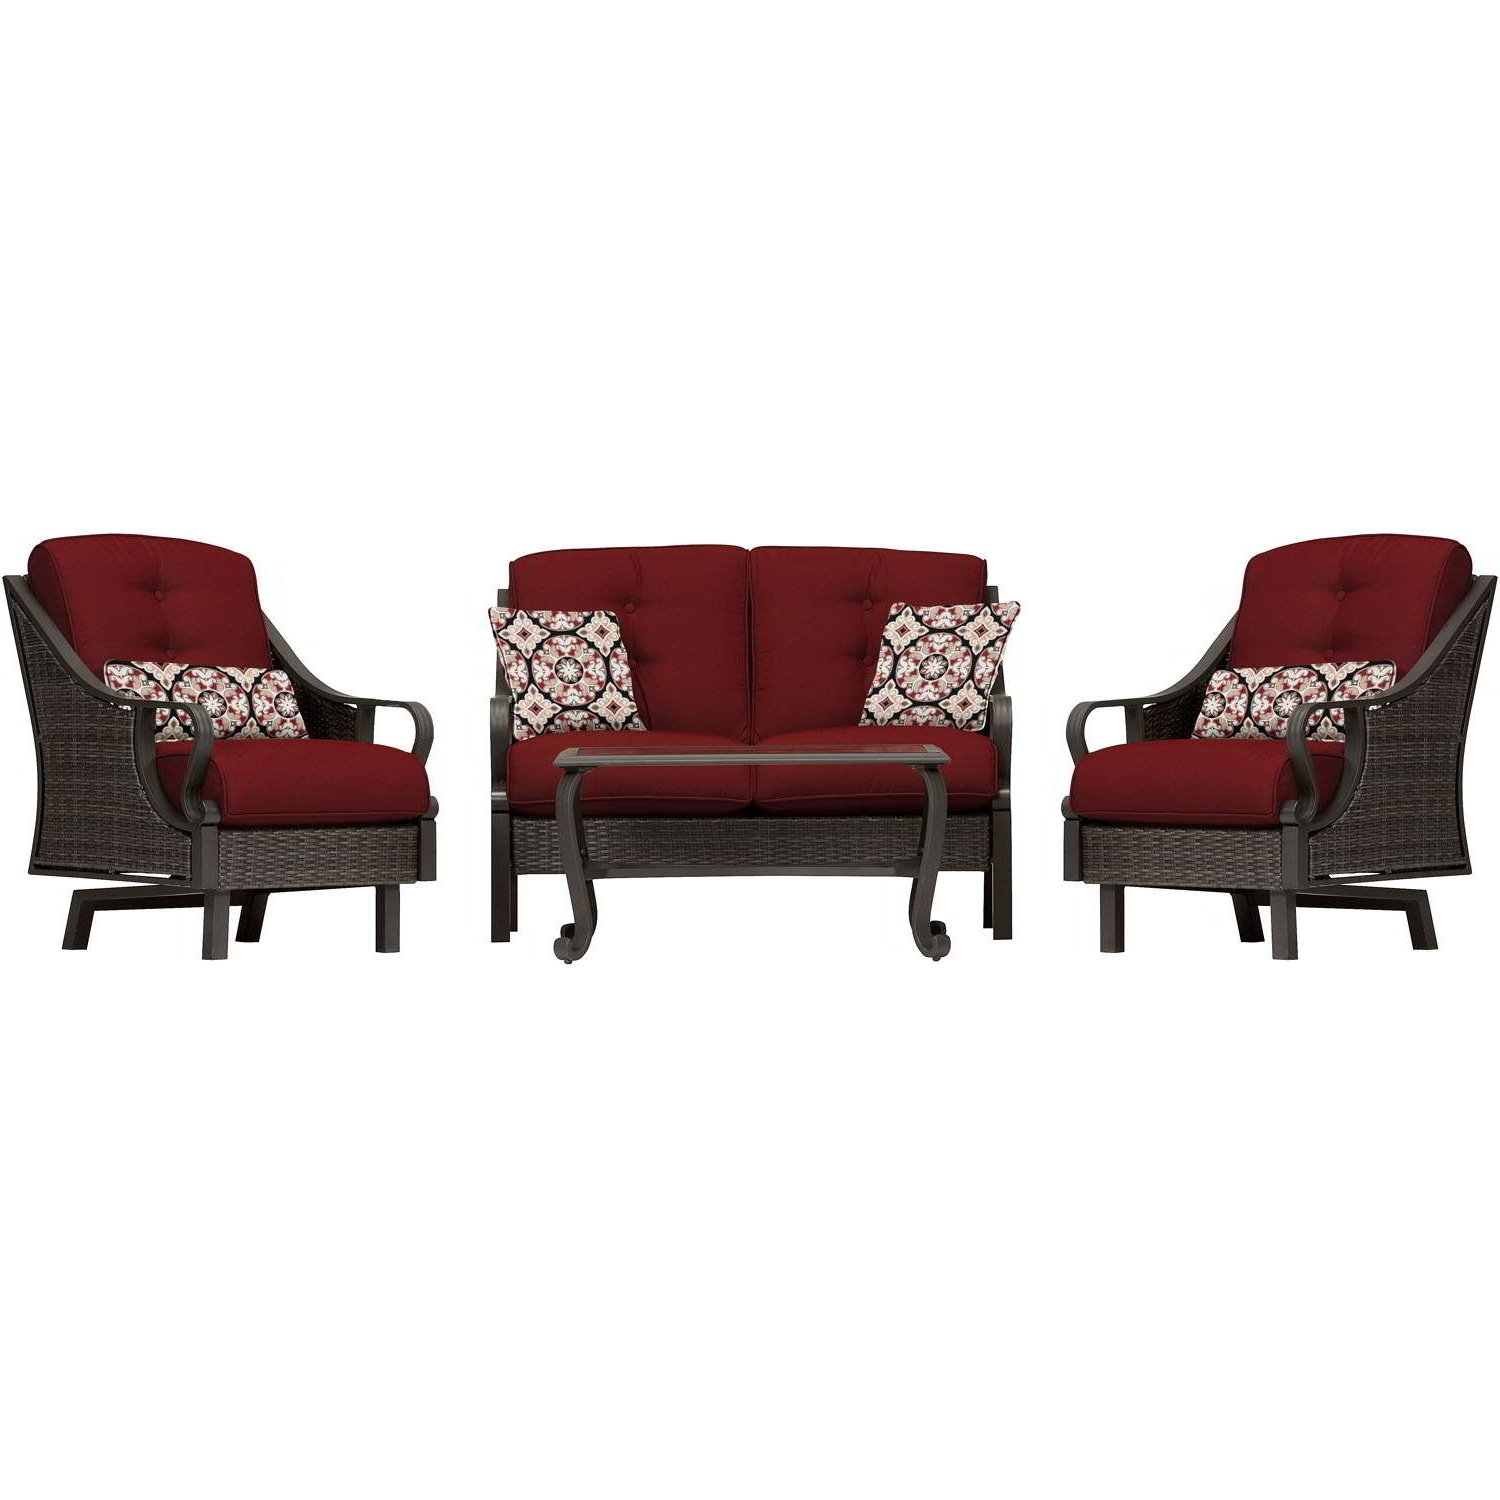 Trendy Ventura 4 Piece Seating Set In Crimson Red – Ventura4Pc Red With Regard To Wicker 4Pc Patio Conversation Sets With Navy Cushions (View 11 of 15)